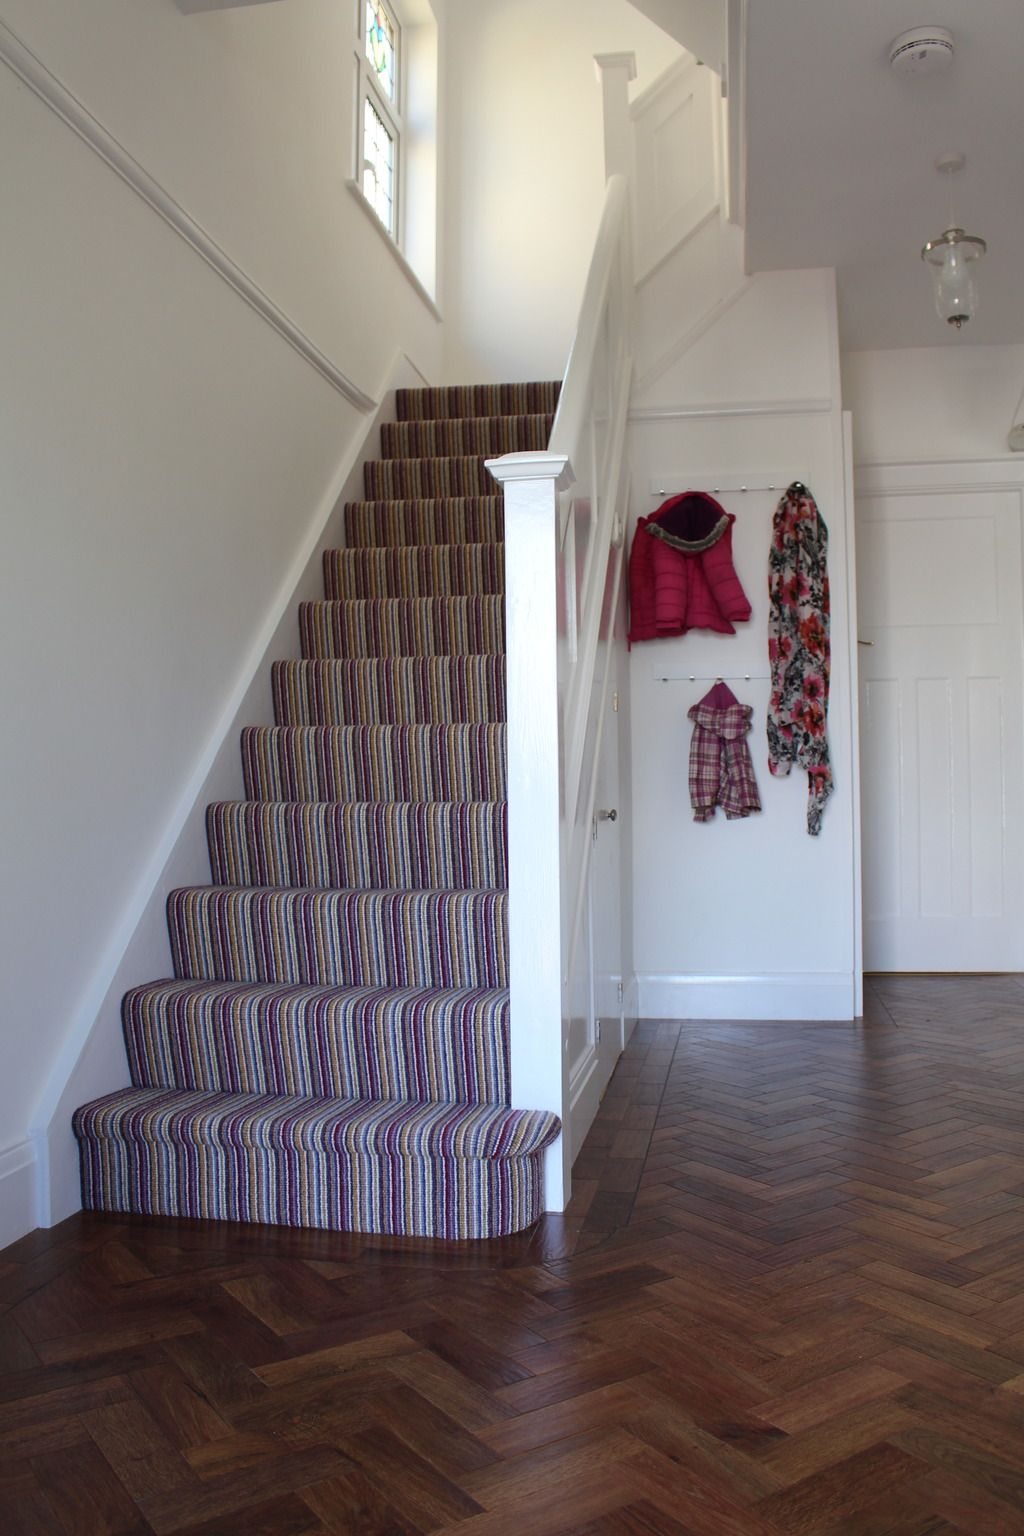 Flooring for hall stairs and landing gurus floor for Hall stairs carpet ideas